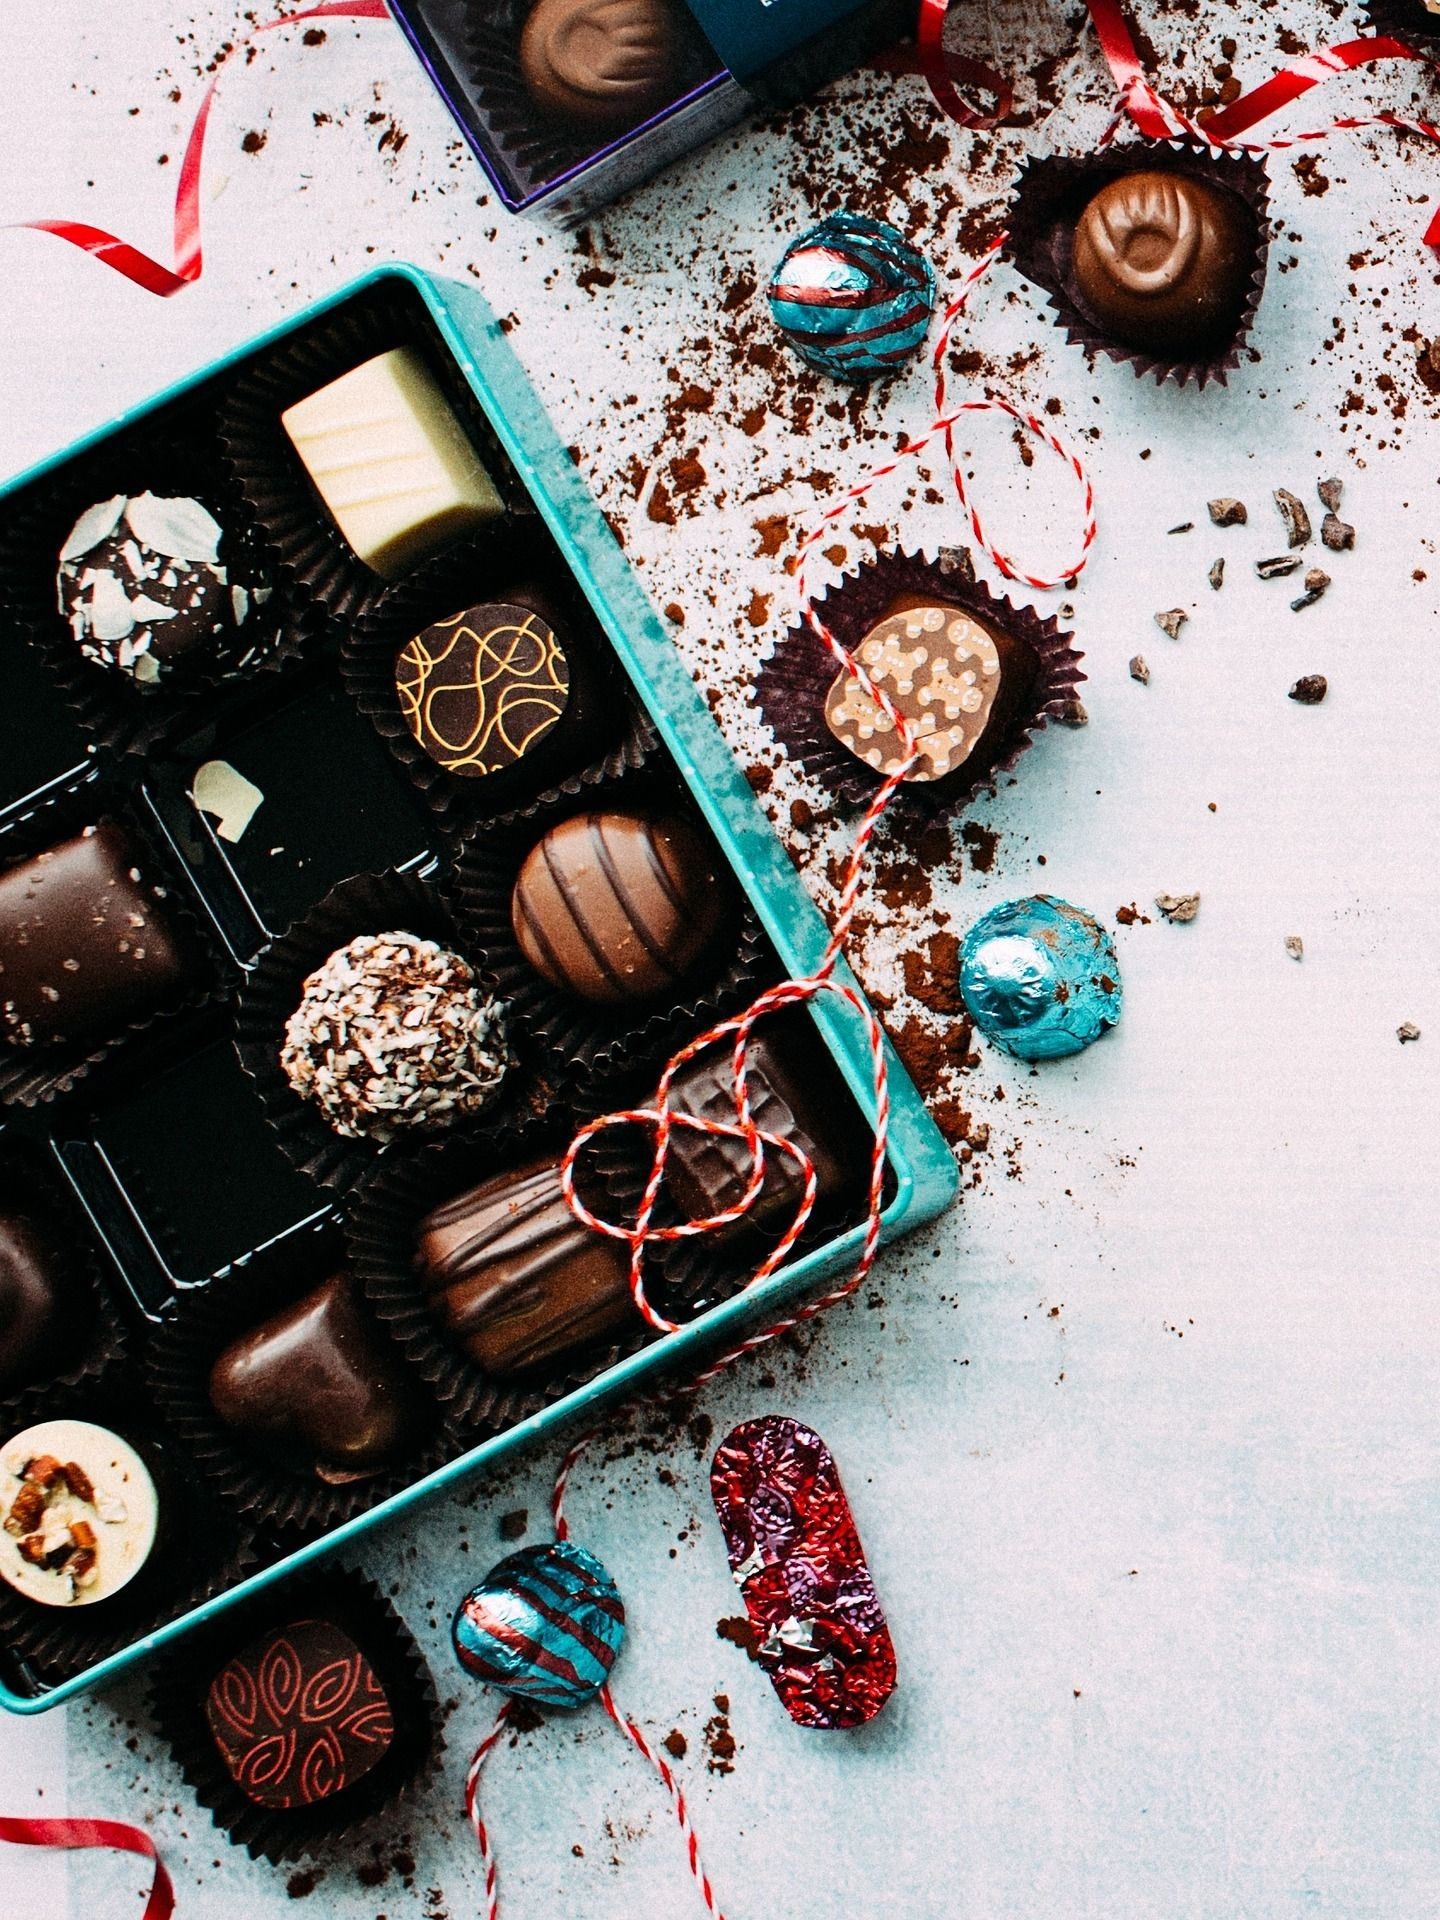 Is chocolate bad for you?